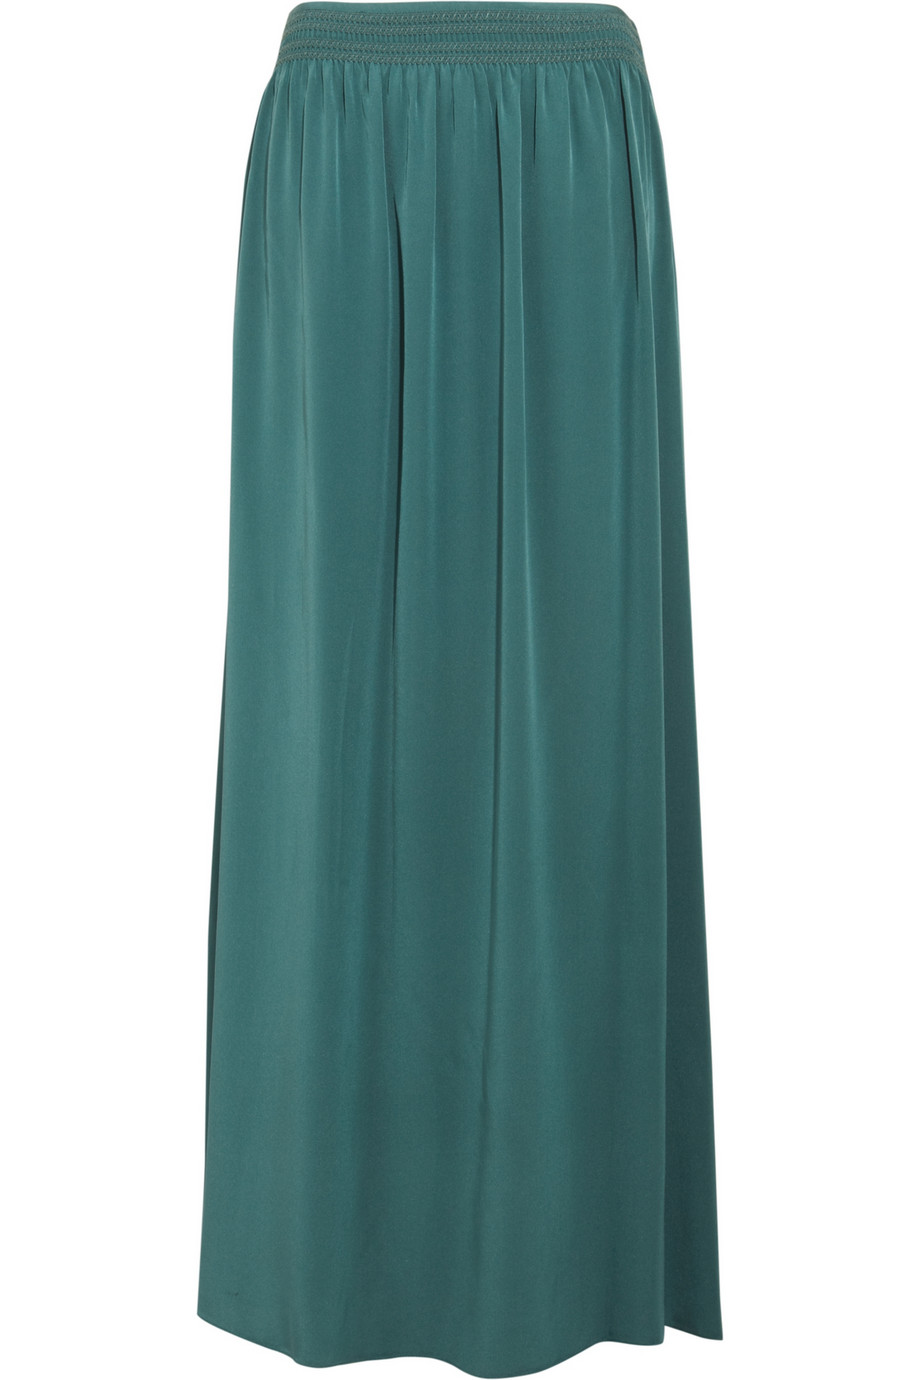 Vanessa bruno Silk Maxi Skirt in Green | Lyst